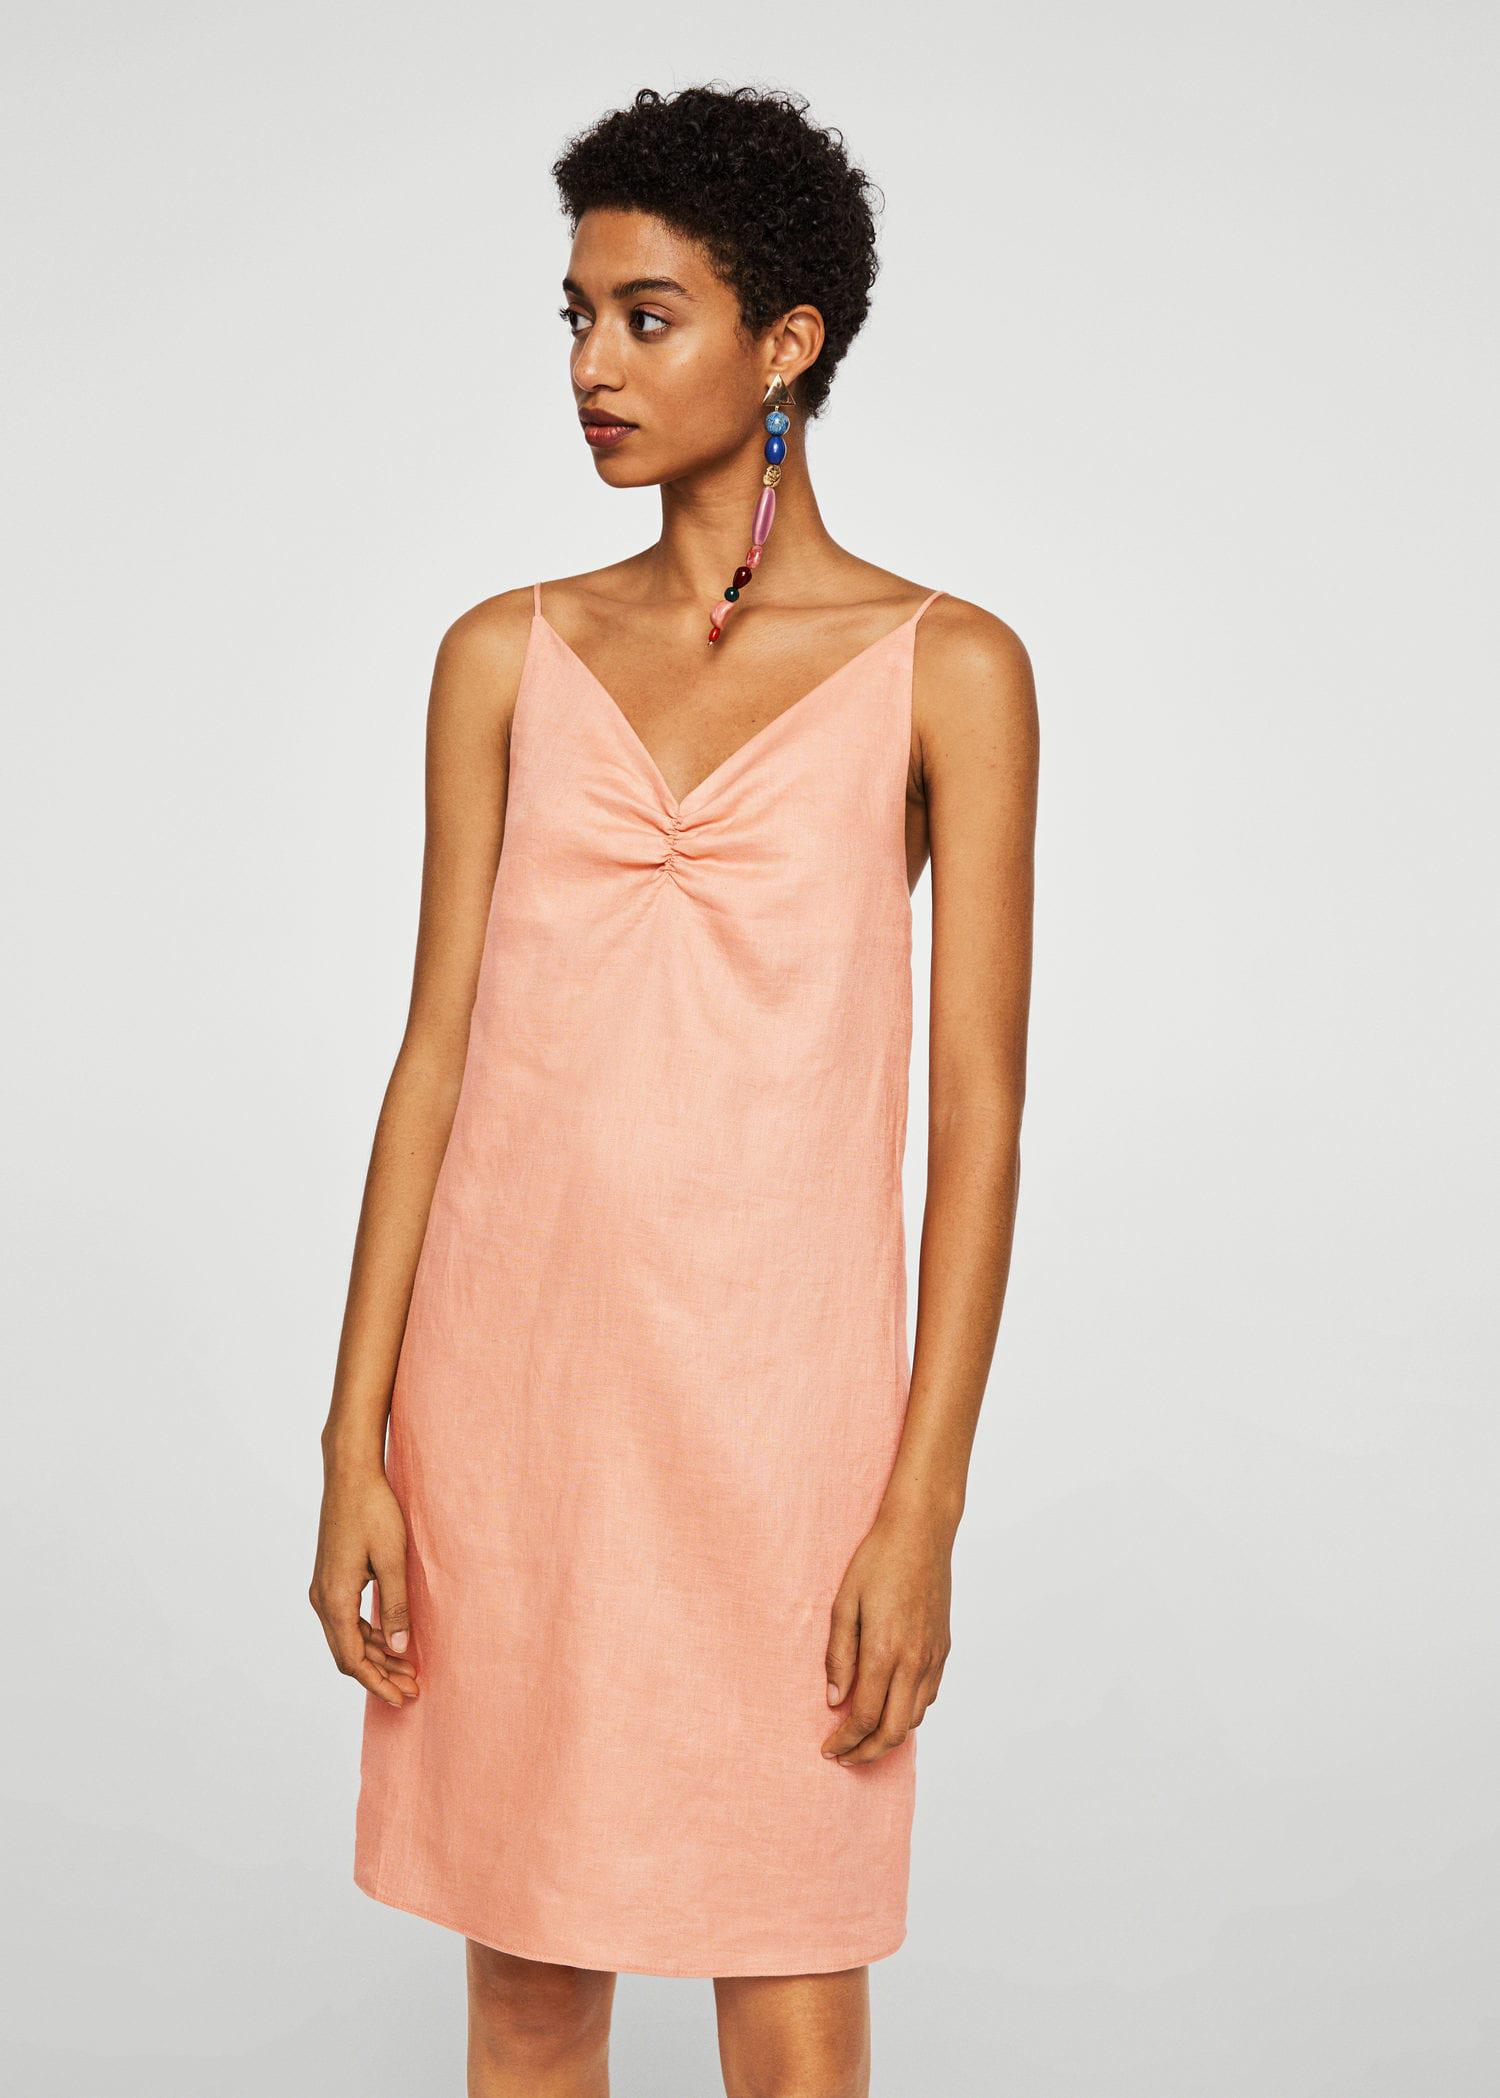 9576bdc597 Mango Linen Strap Dress in Pink - Lyst